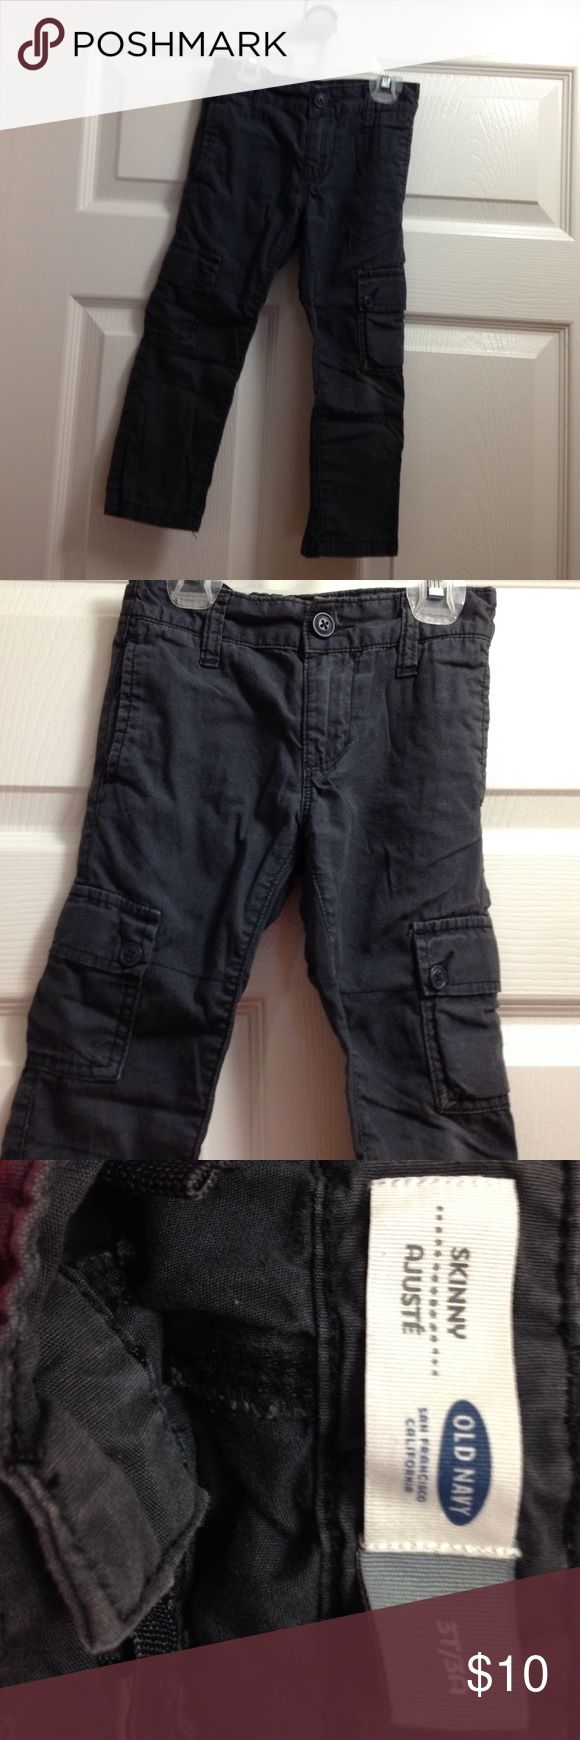 Old navy skinny cargo pants Cute old navy skinny cargo pants.  Dark grayish color. Has adjustable waist. Perfect condition only worn one time! Old Navy Bottoms Casual